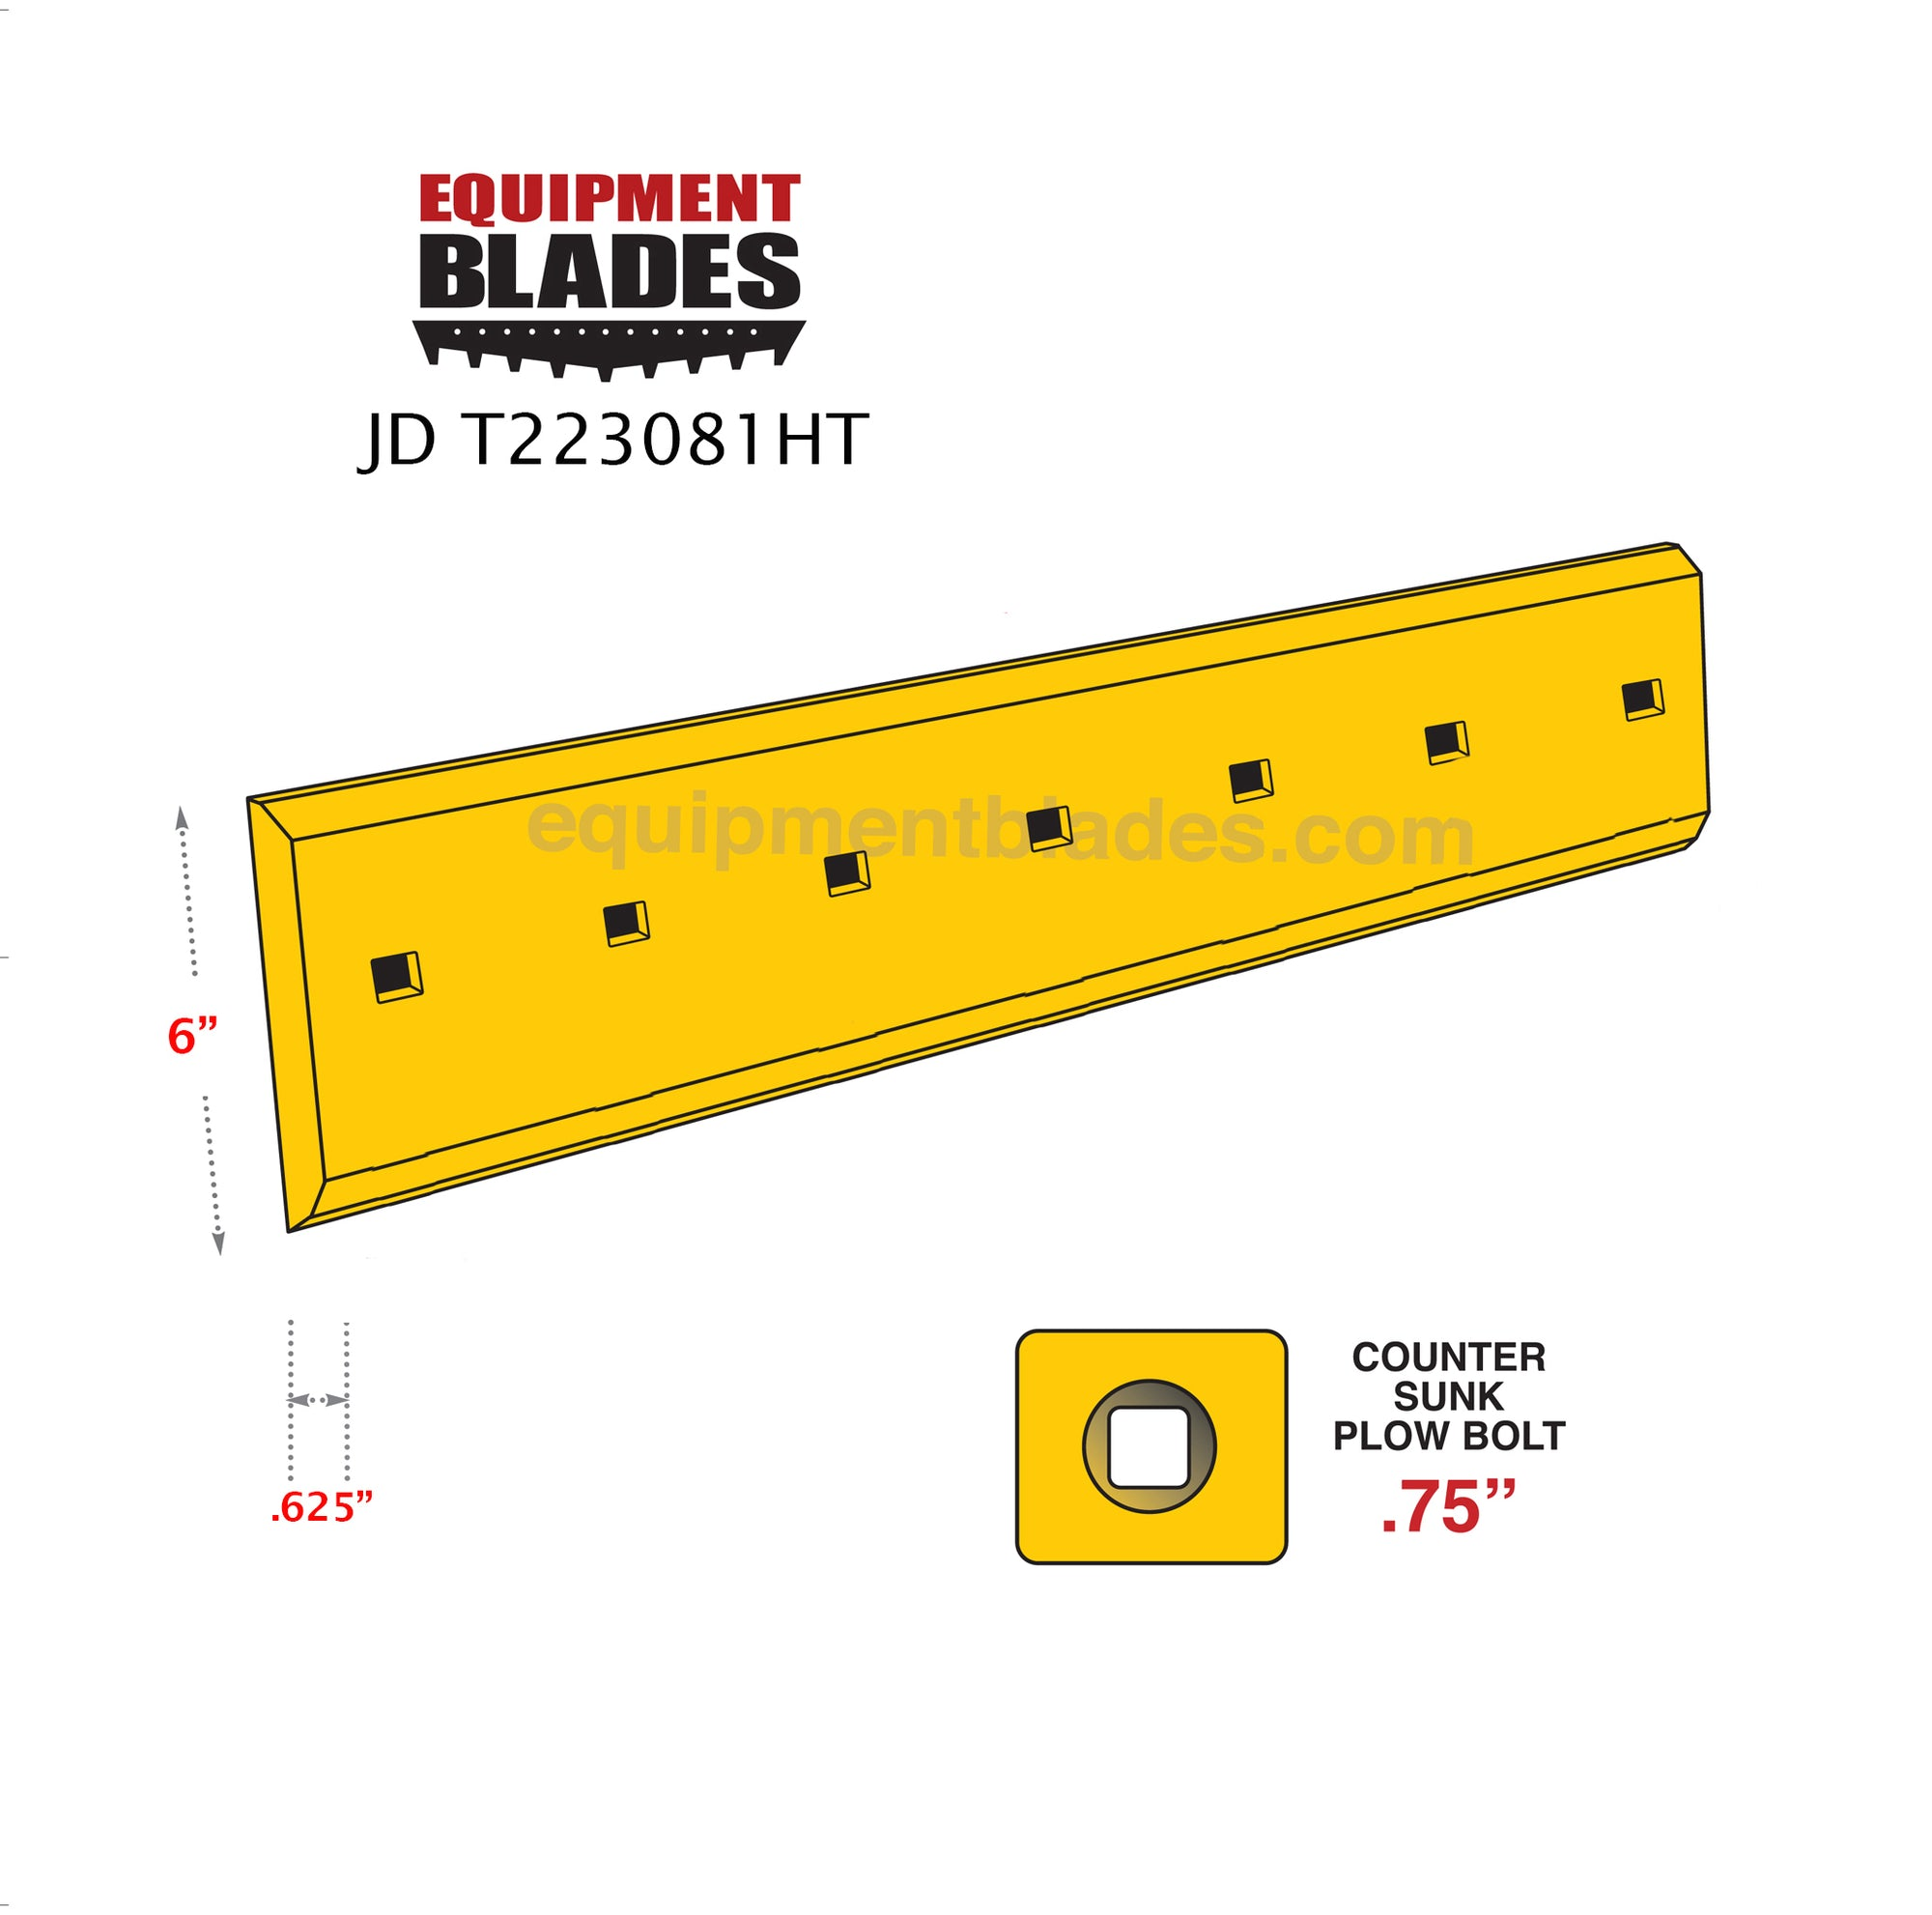 JD T223081HT-Equipment Blades Inc-Equipment Blades Inc